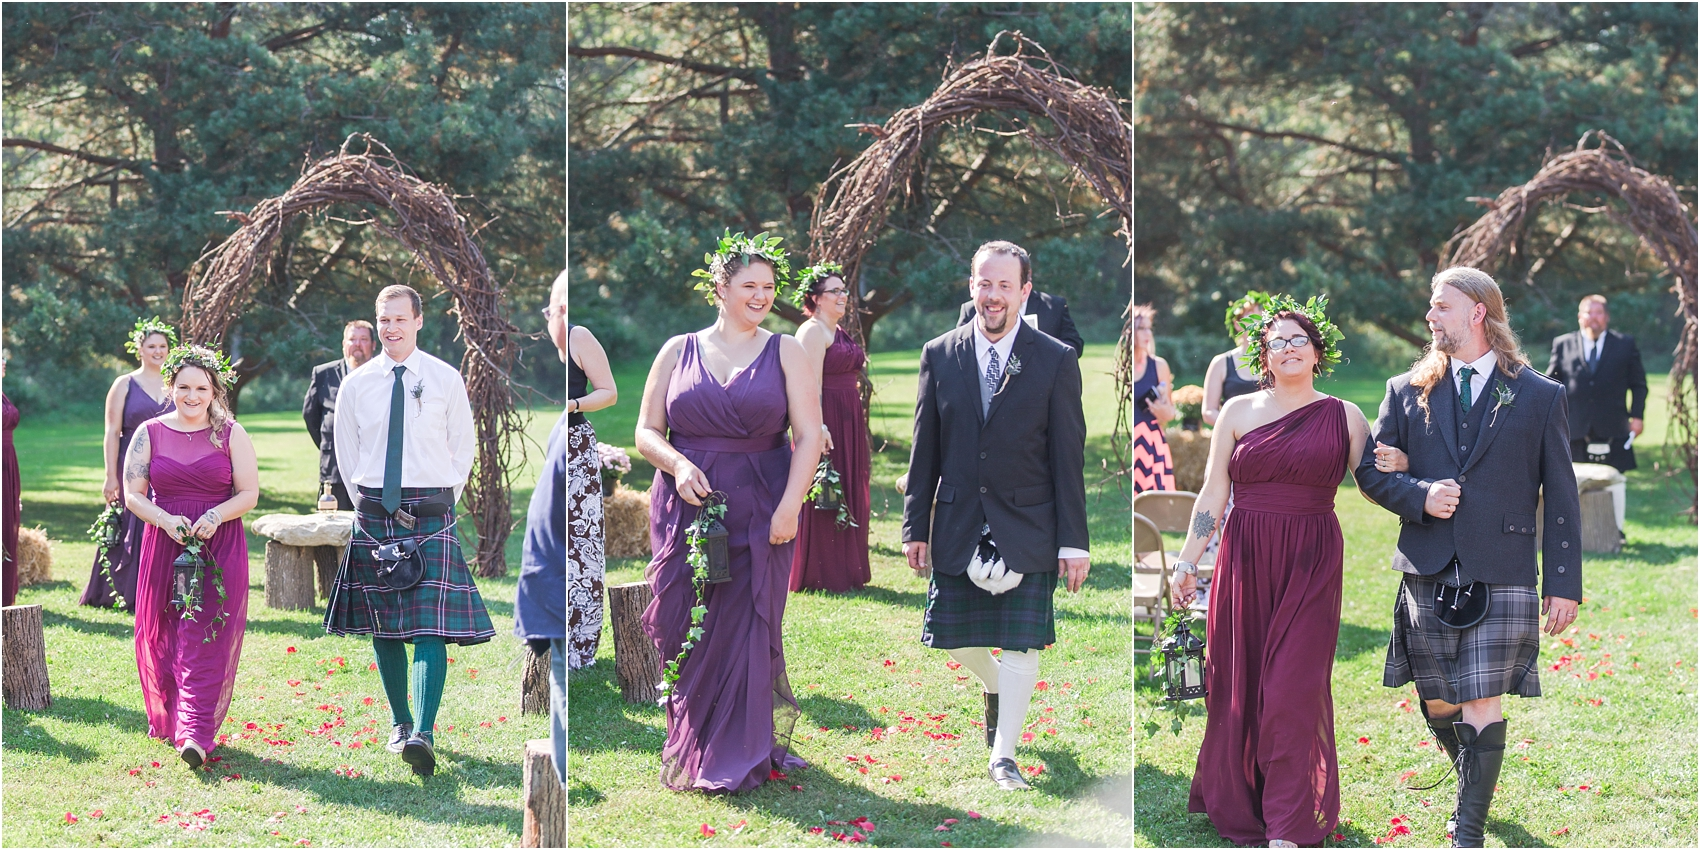 scottish-inspired-wedding-photos-in-the-country-in-port-sanilac-michigan-by-courtney-carolyn-photography_0034.jpg